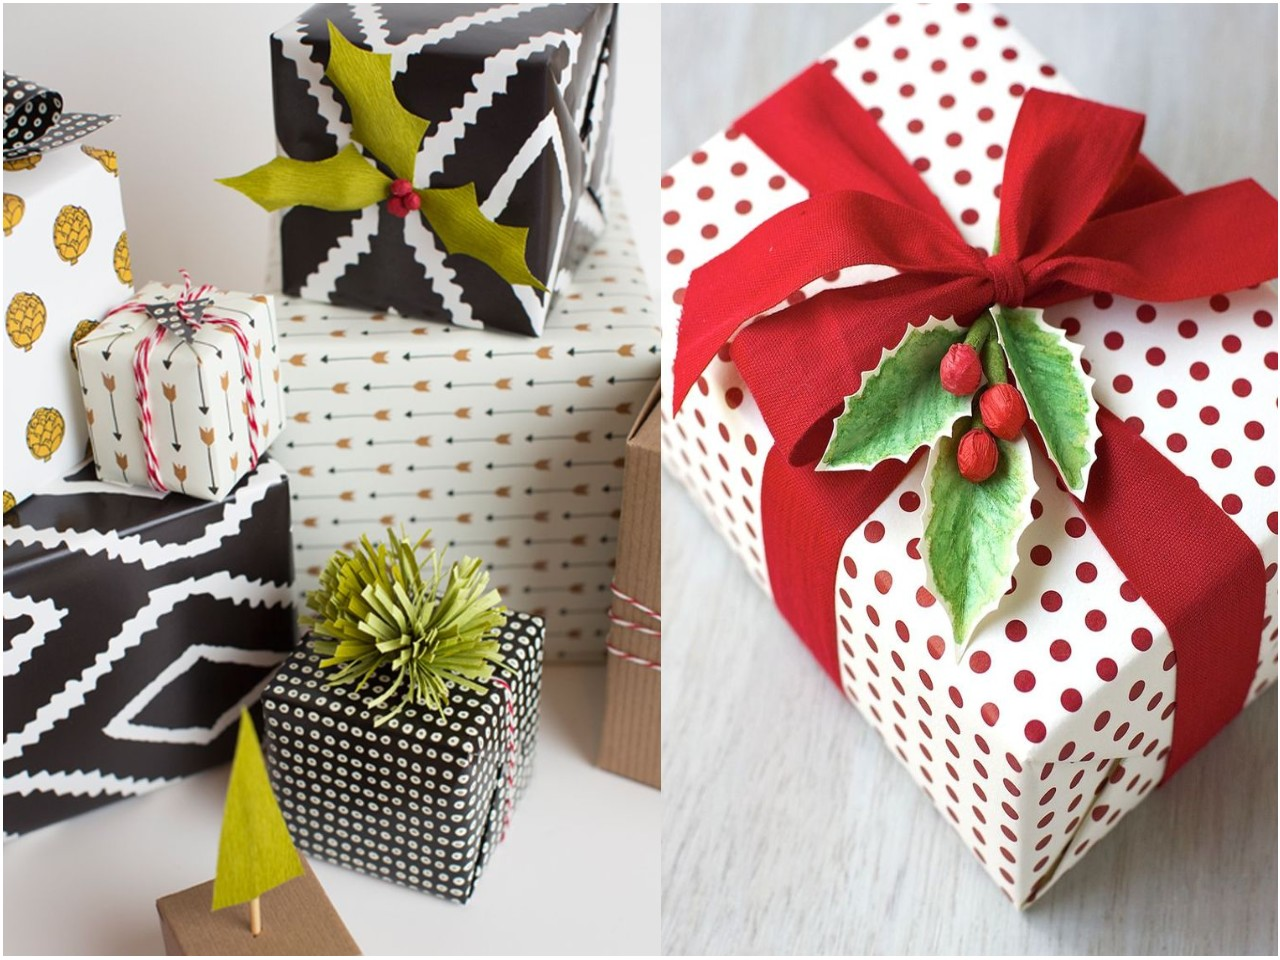 7 ideas originales para envolver regalos for Decorar regalos